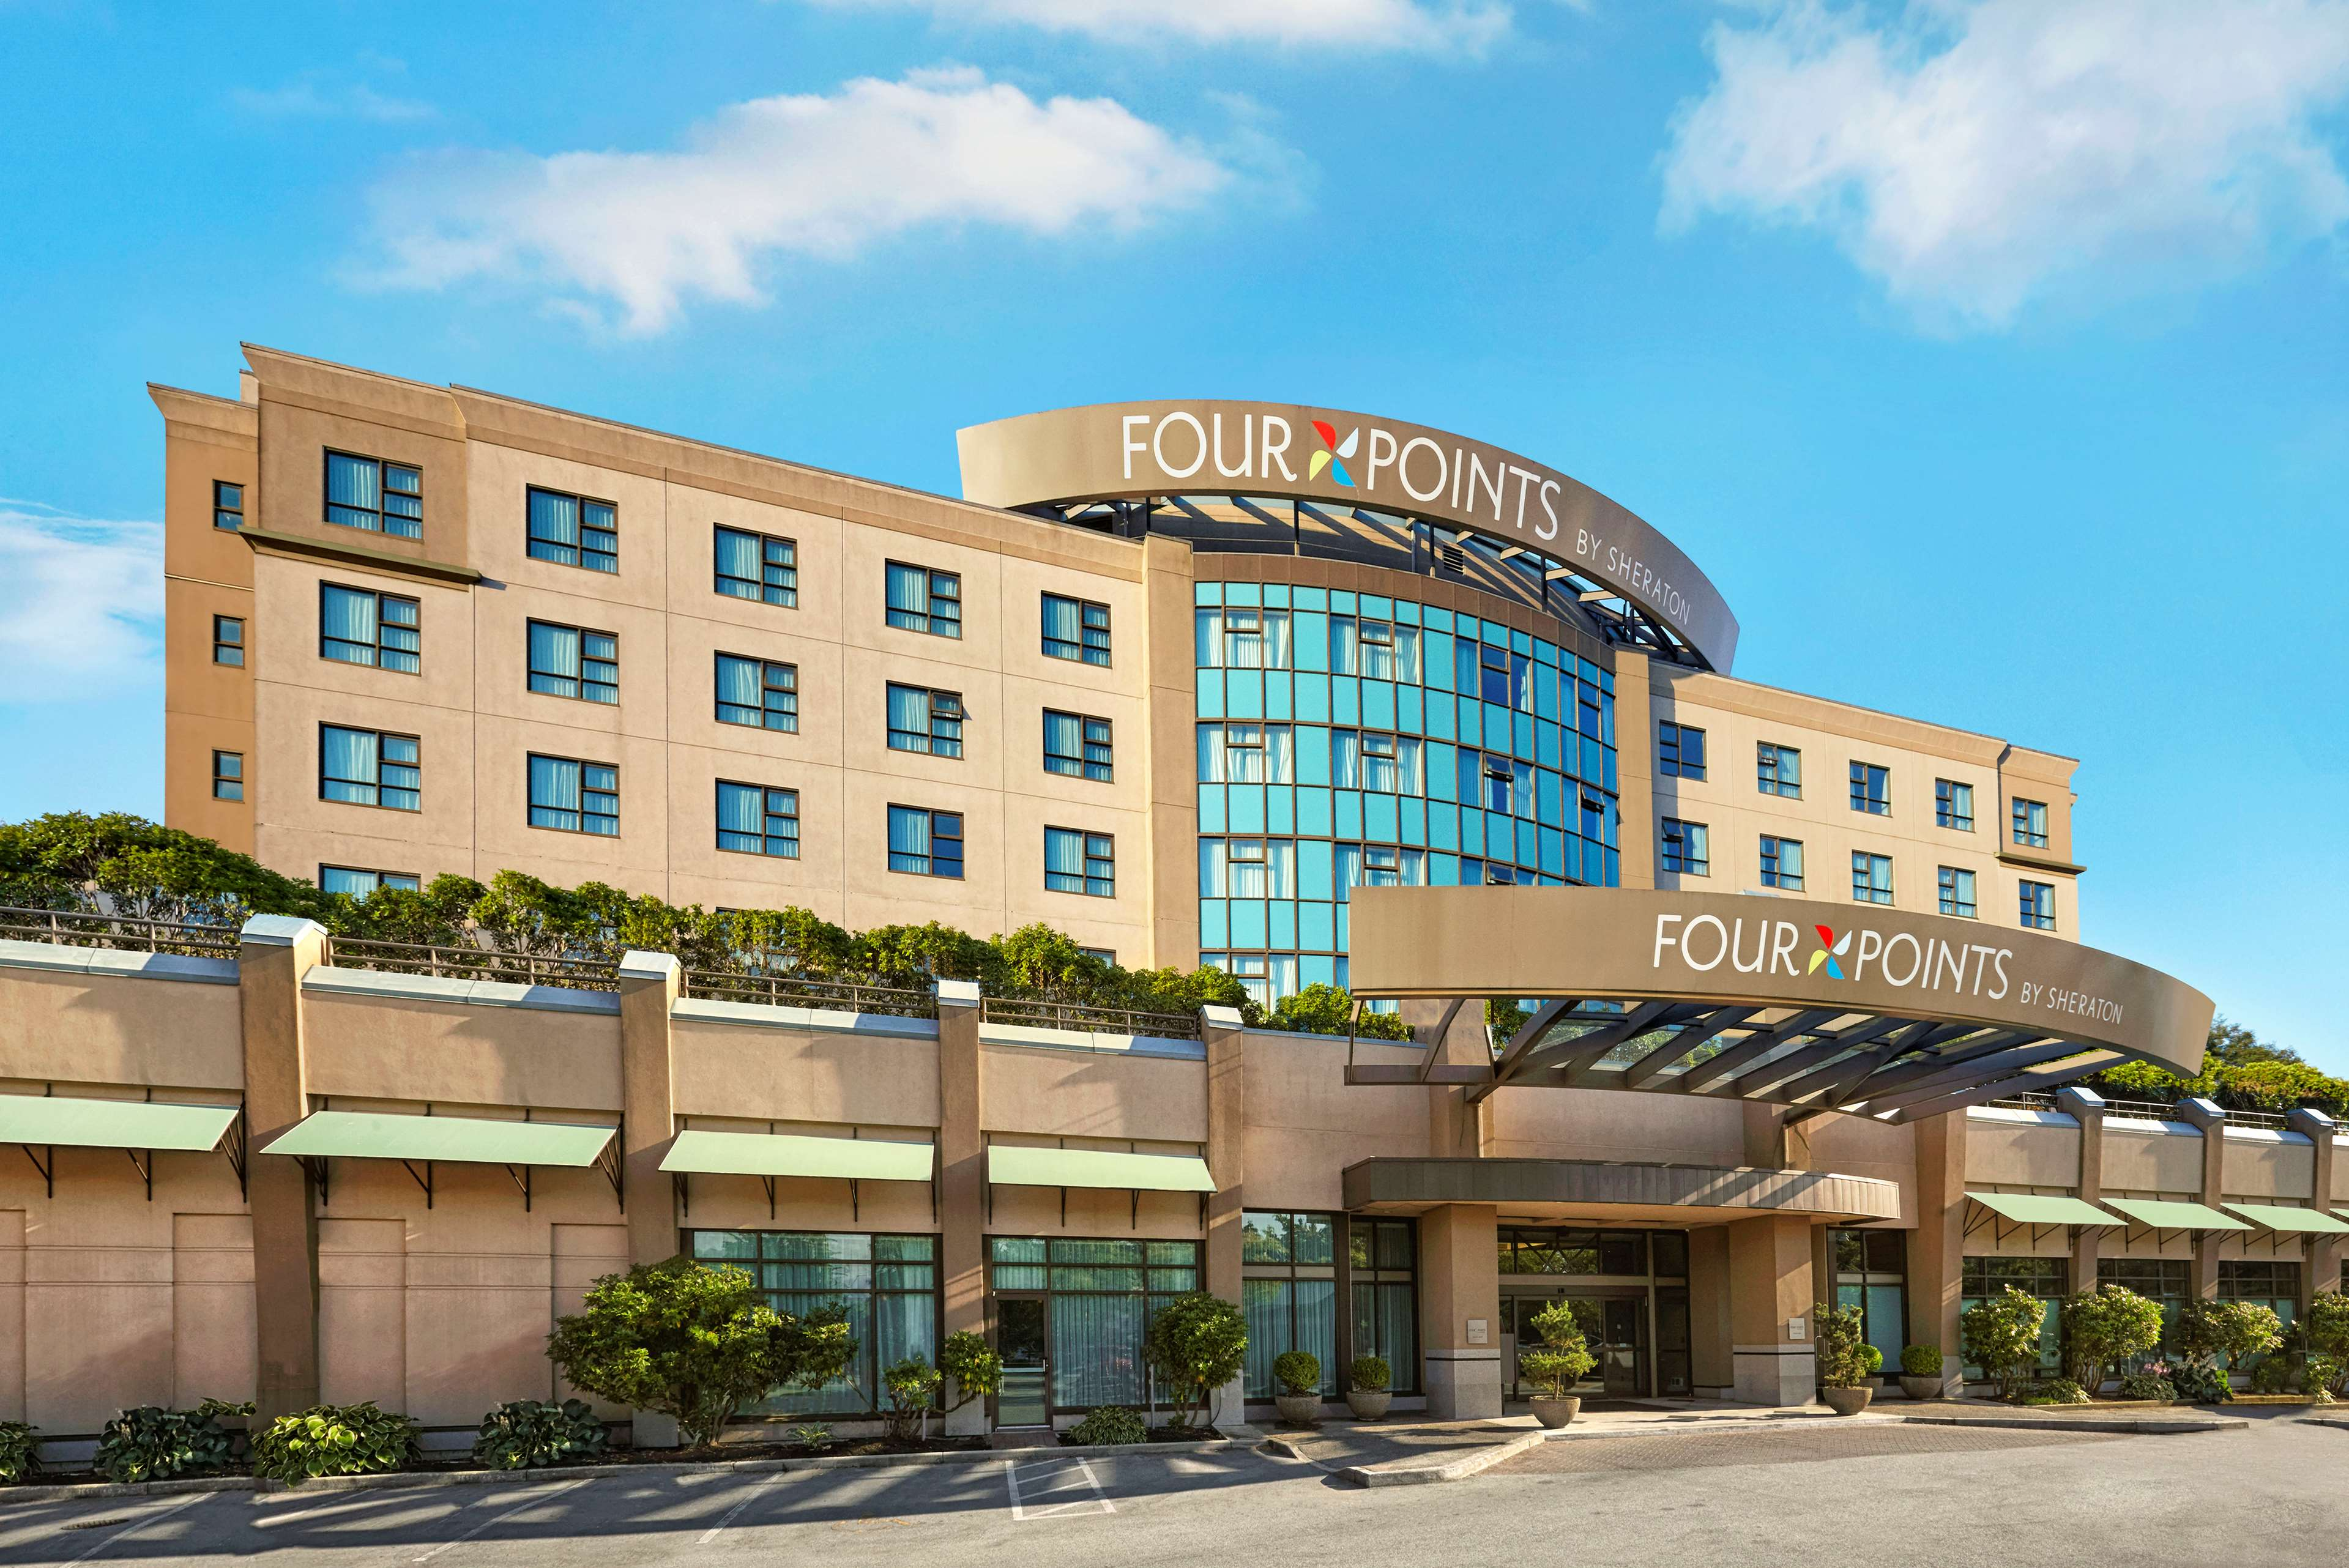 Hotel in BC Richmond V6X 4A6 Four Points by Sheraton Vancouver Airport 8368 Alexandra Road  (604)214-0888